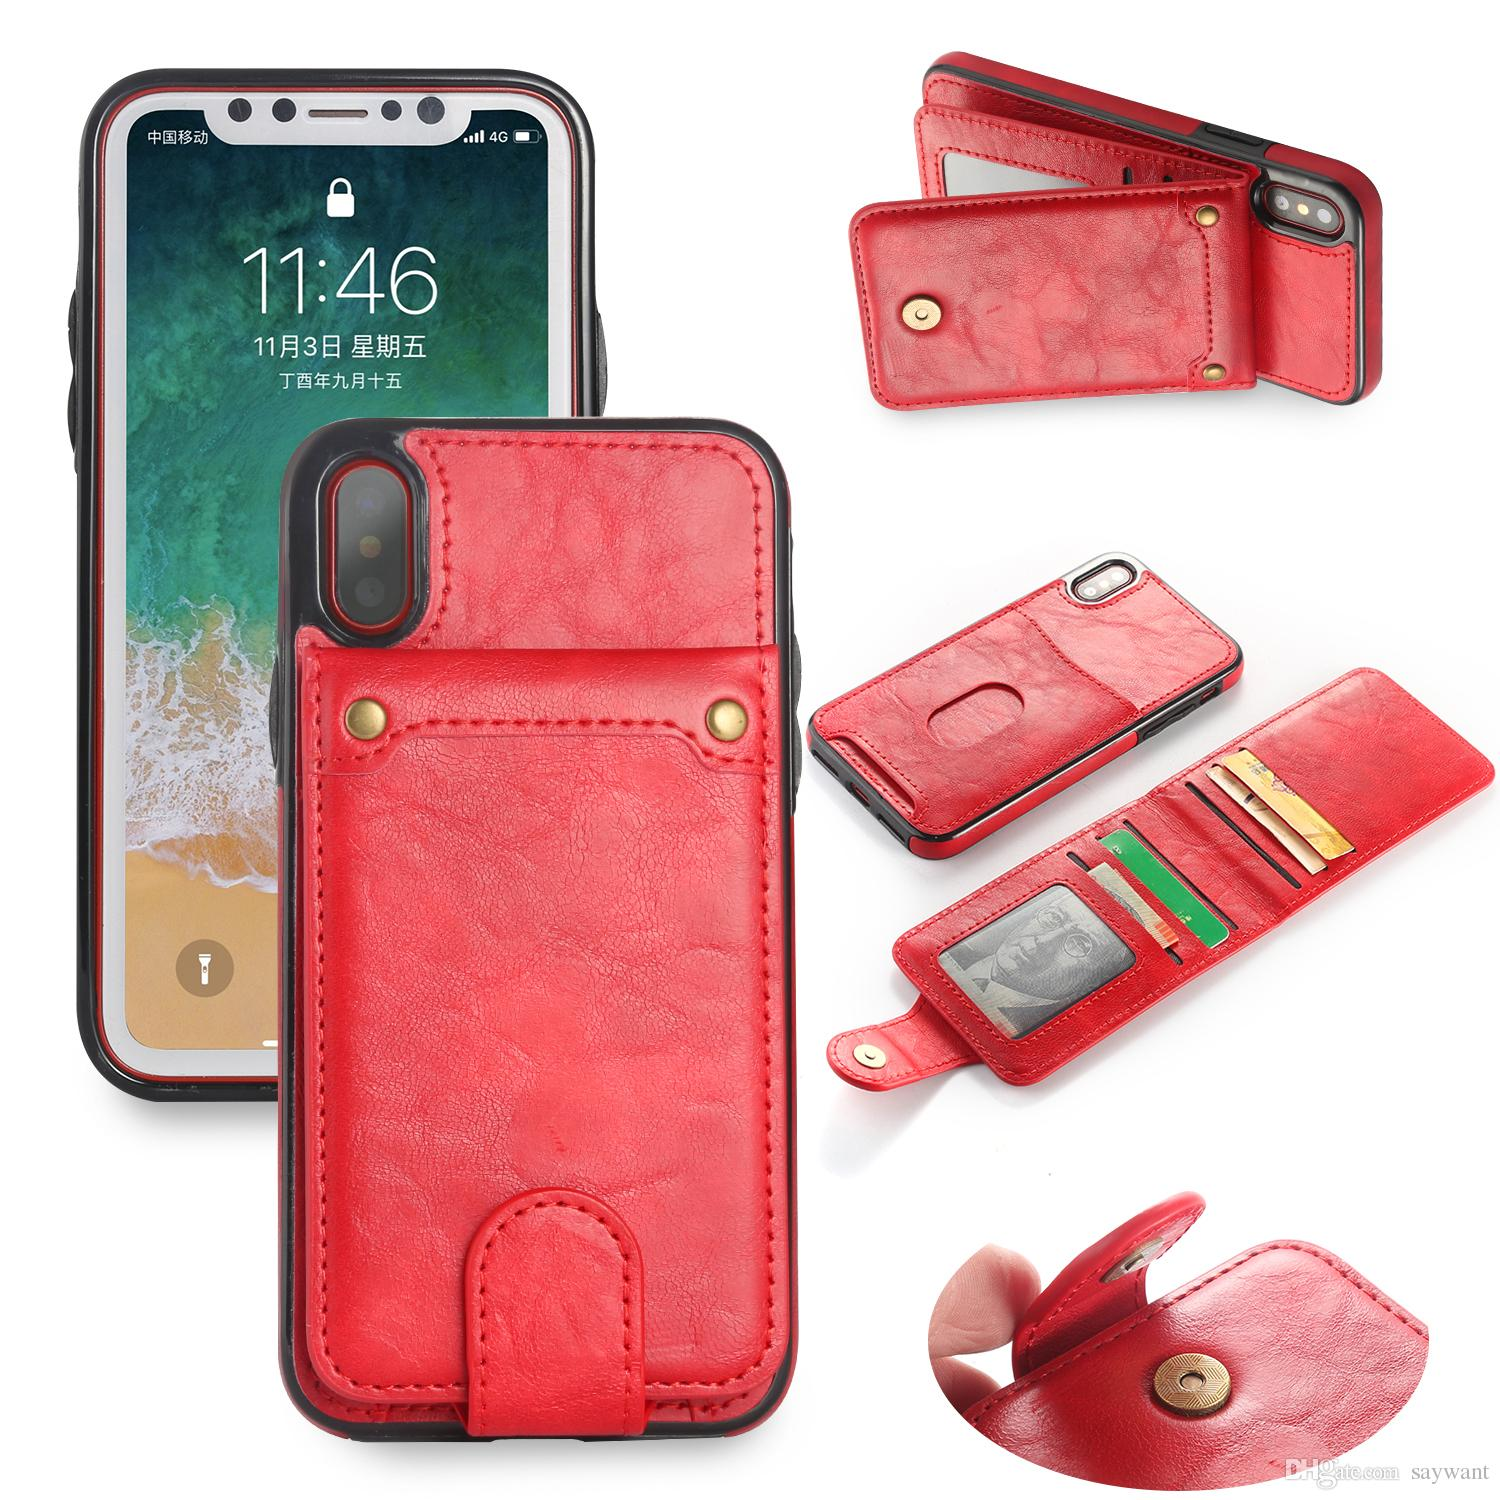 top design aad3b 1ccae Split type Multi-functional Fashion Magnetic Flip Leather Wallet phone case  for iPhone X 8 7 6 plus Samsung note8 S8 with Card Slots